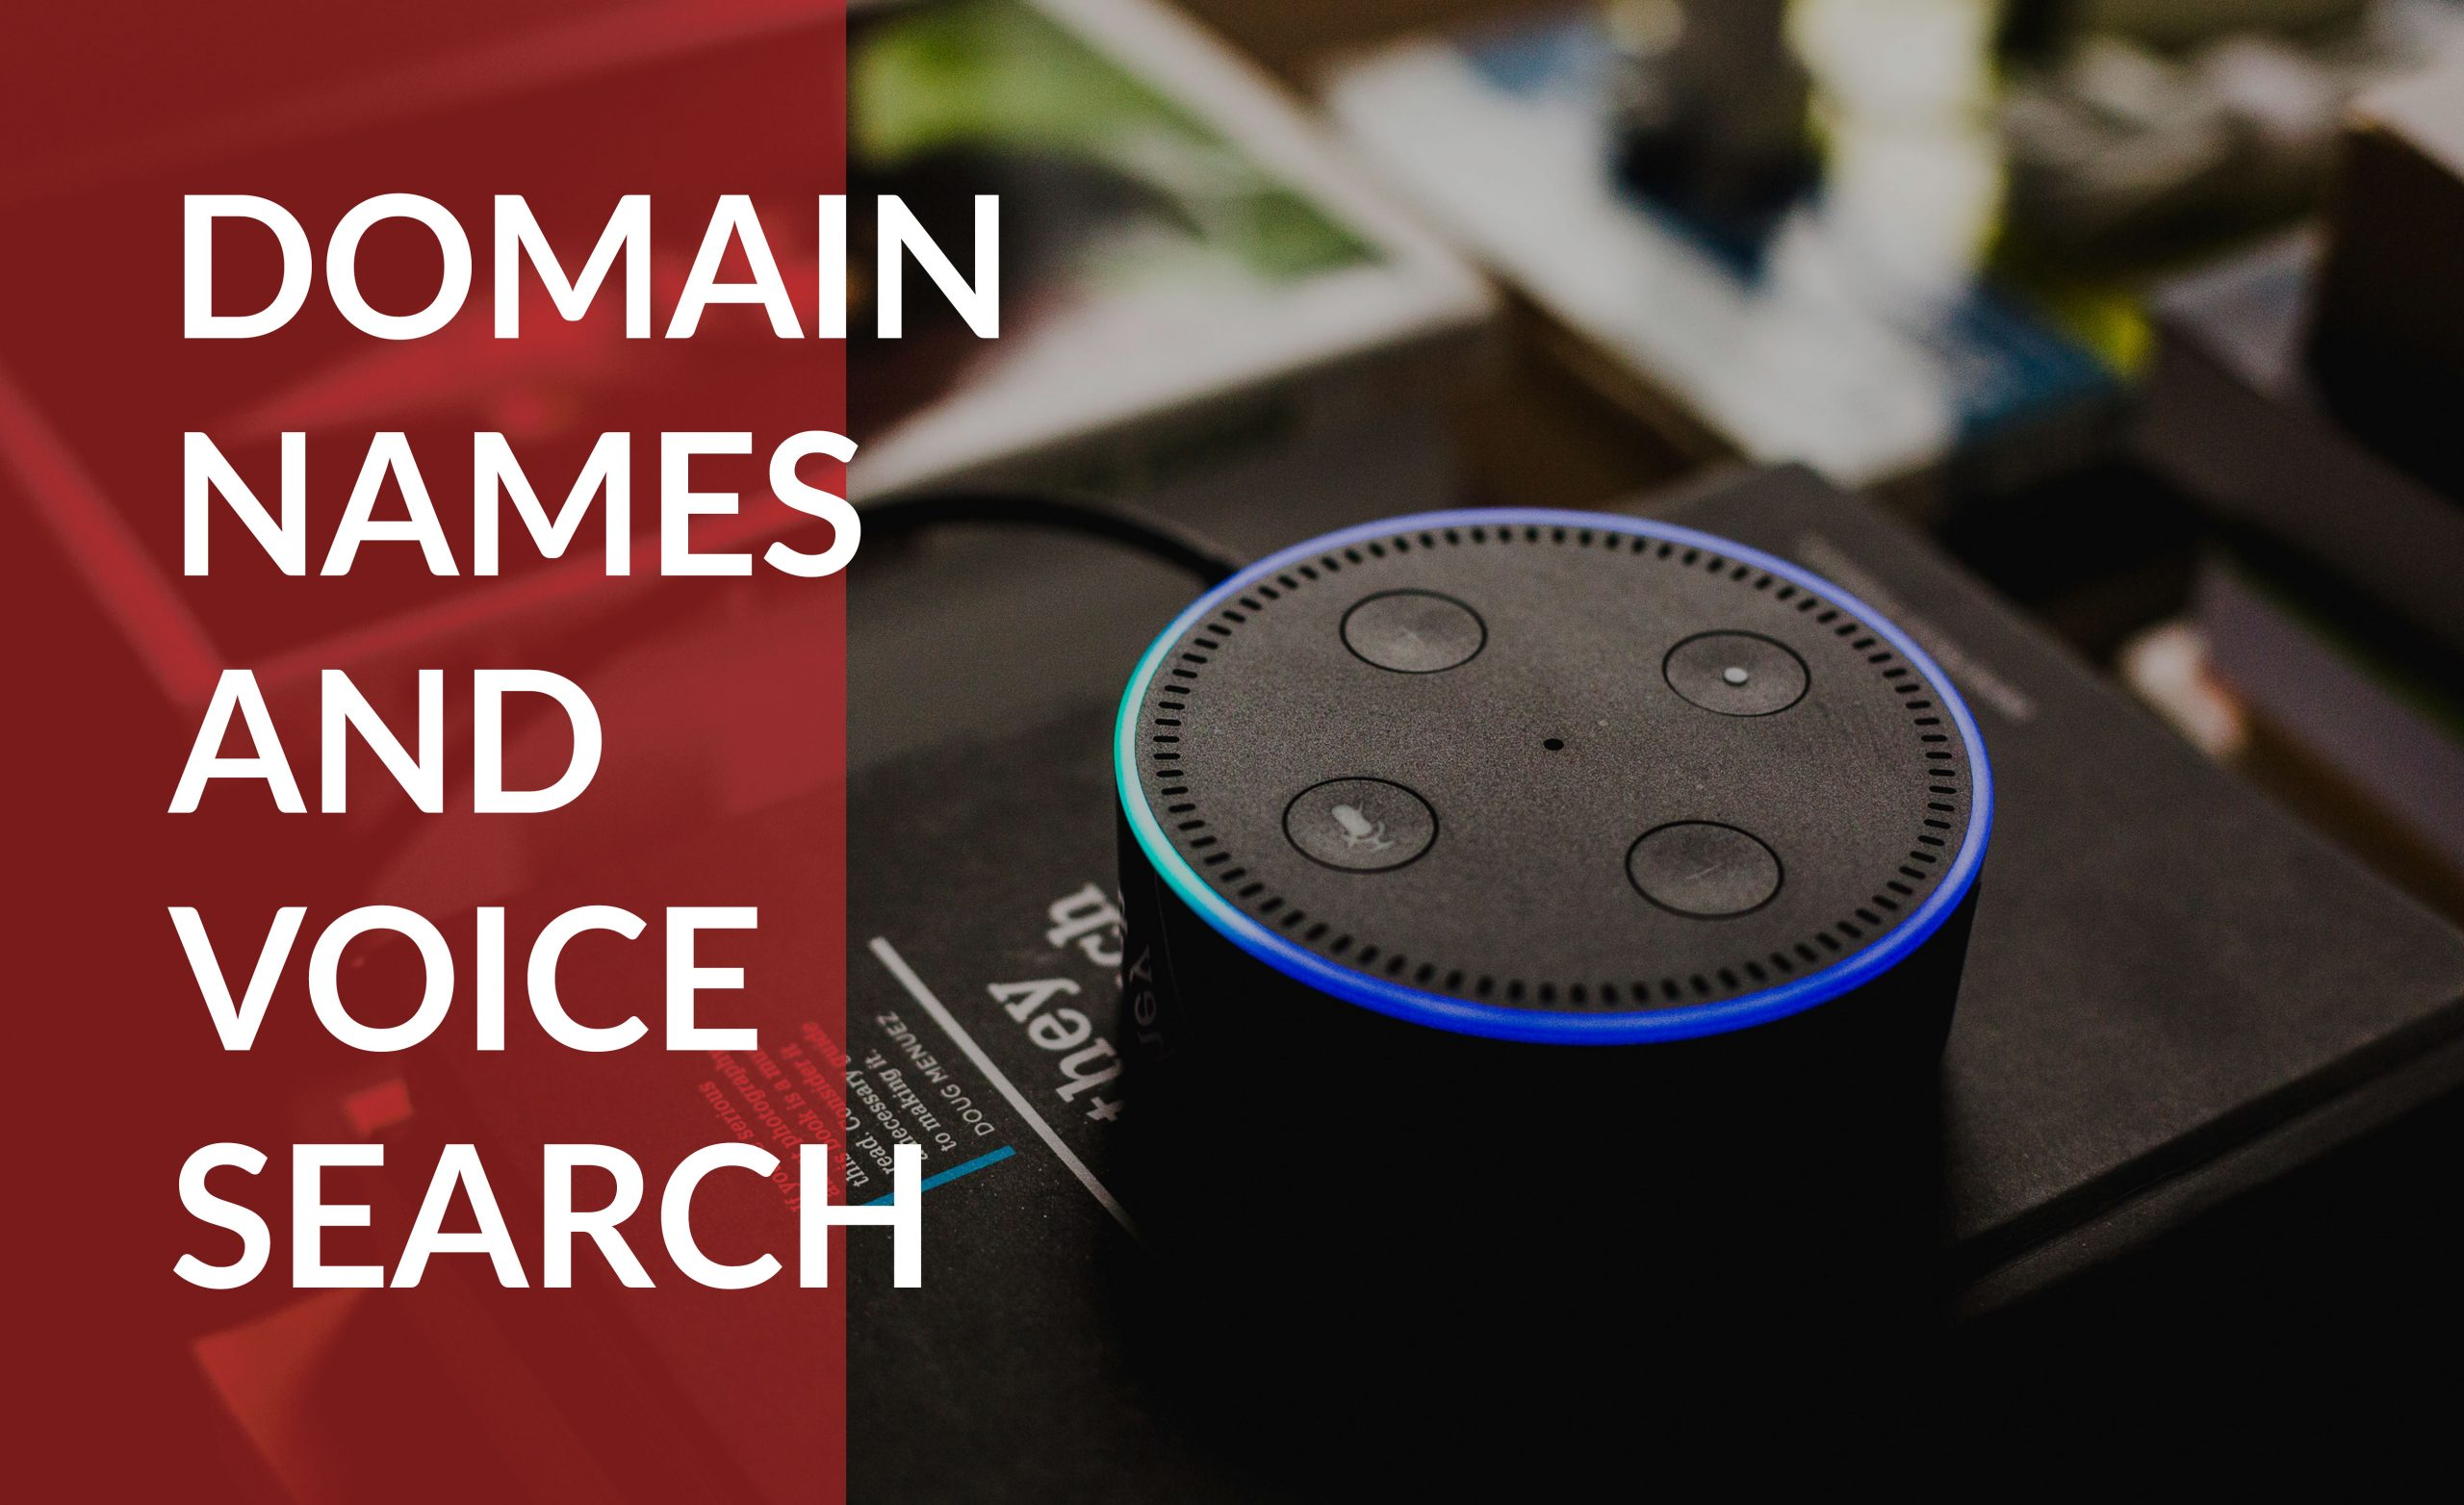 Domain Names and Voice Search